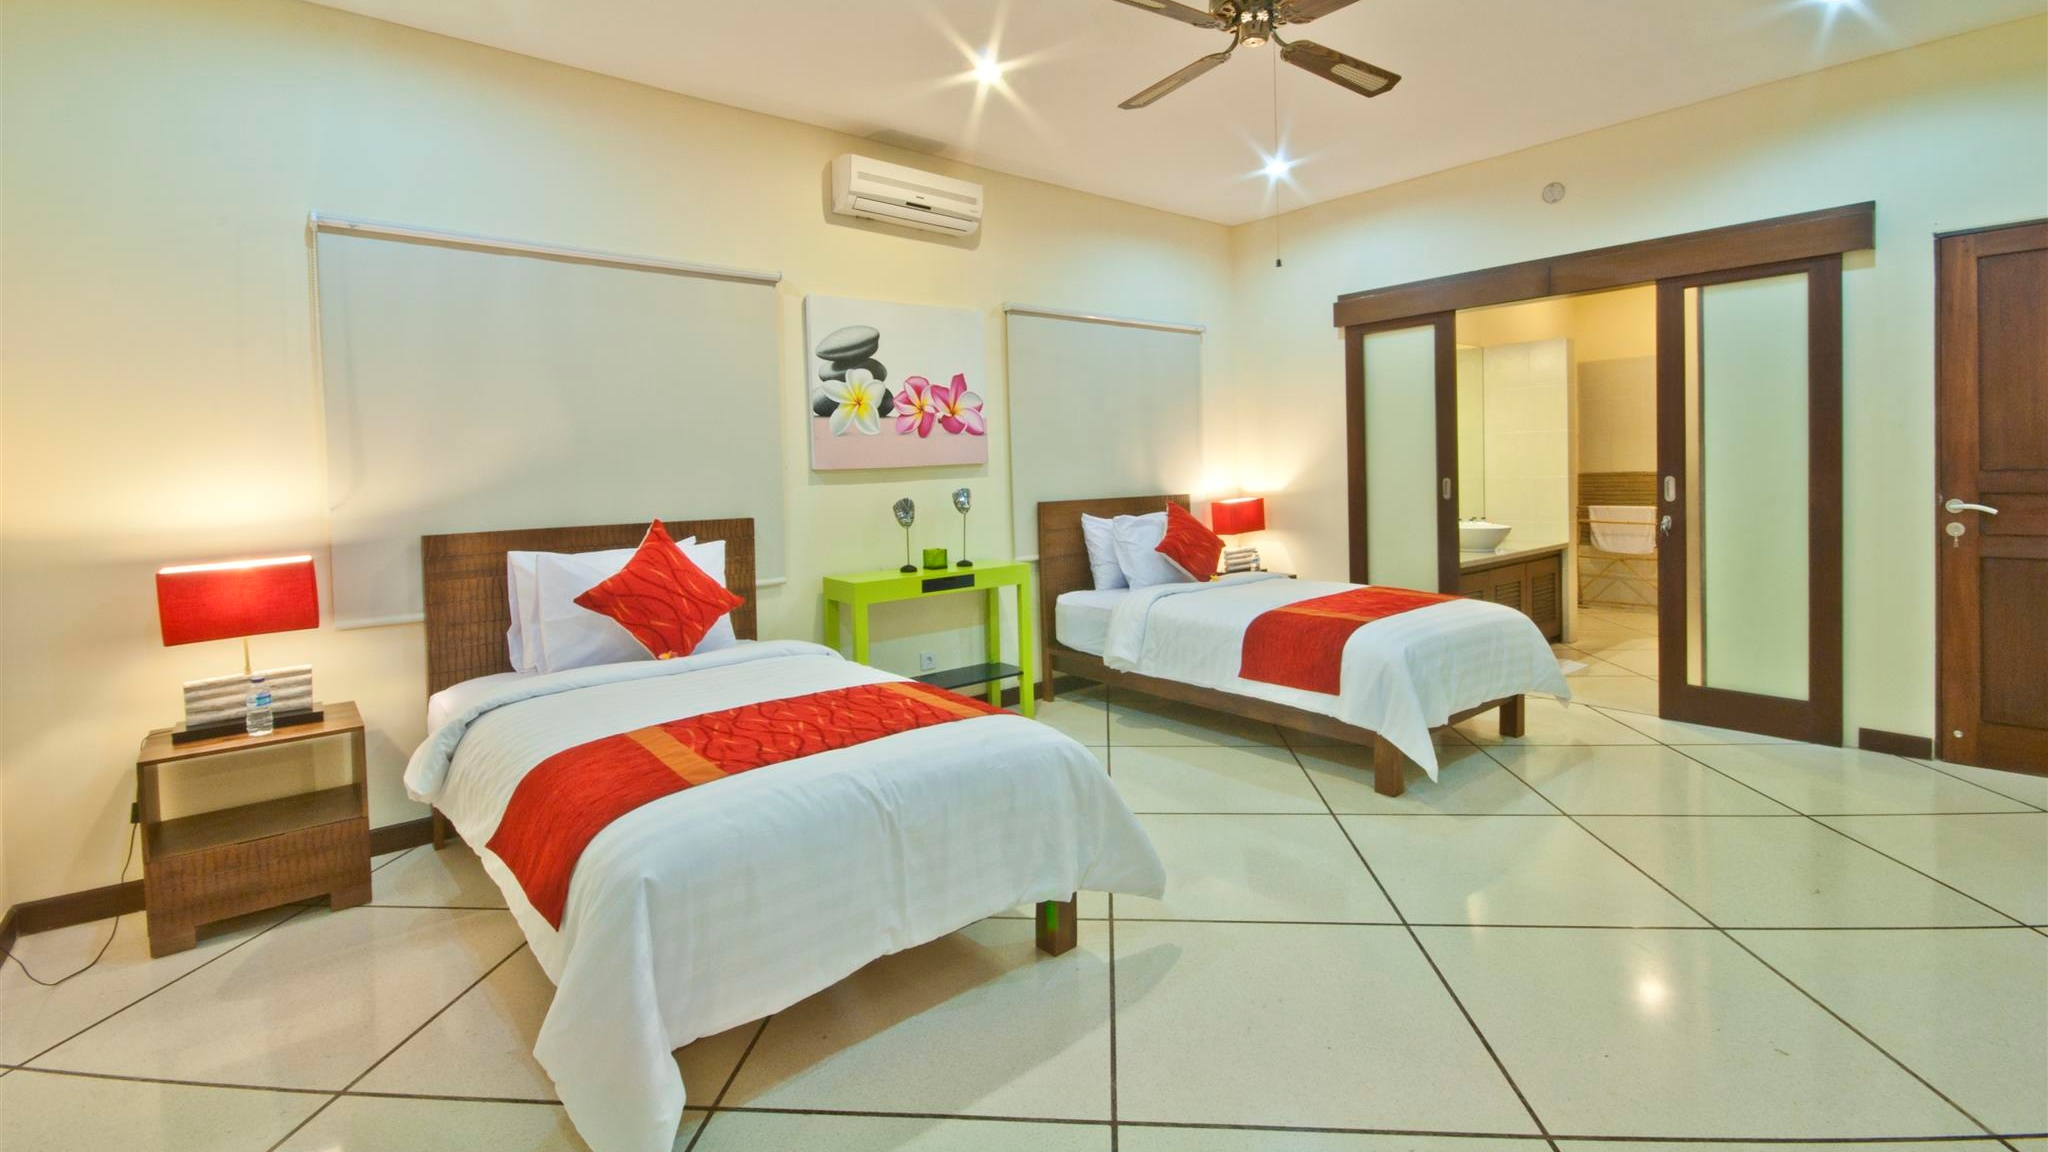 Twin Bedroom and Bathroom - Villa Gading - Seminyak, Bali